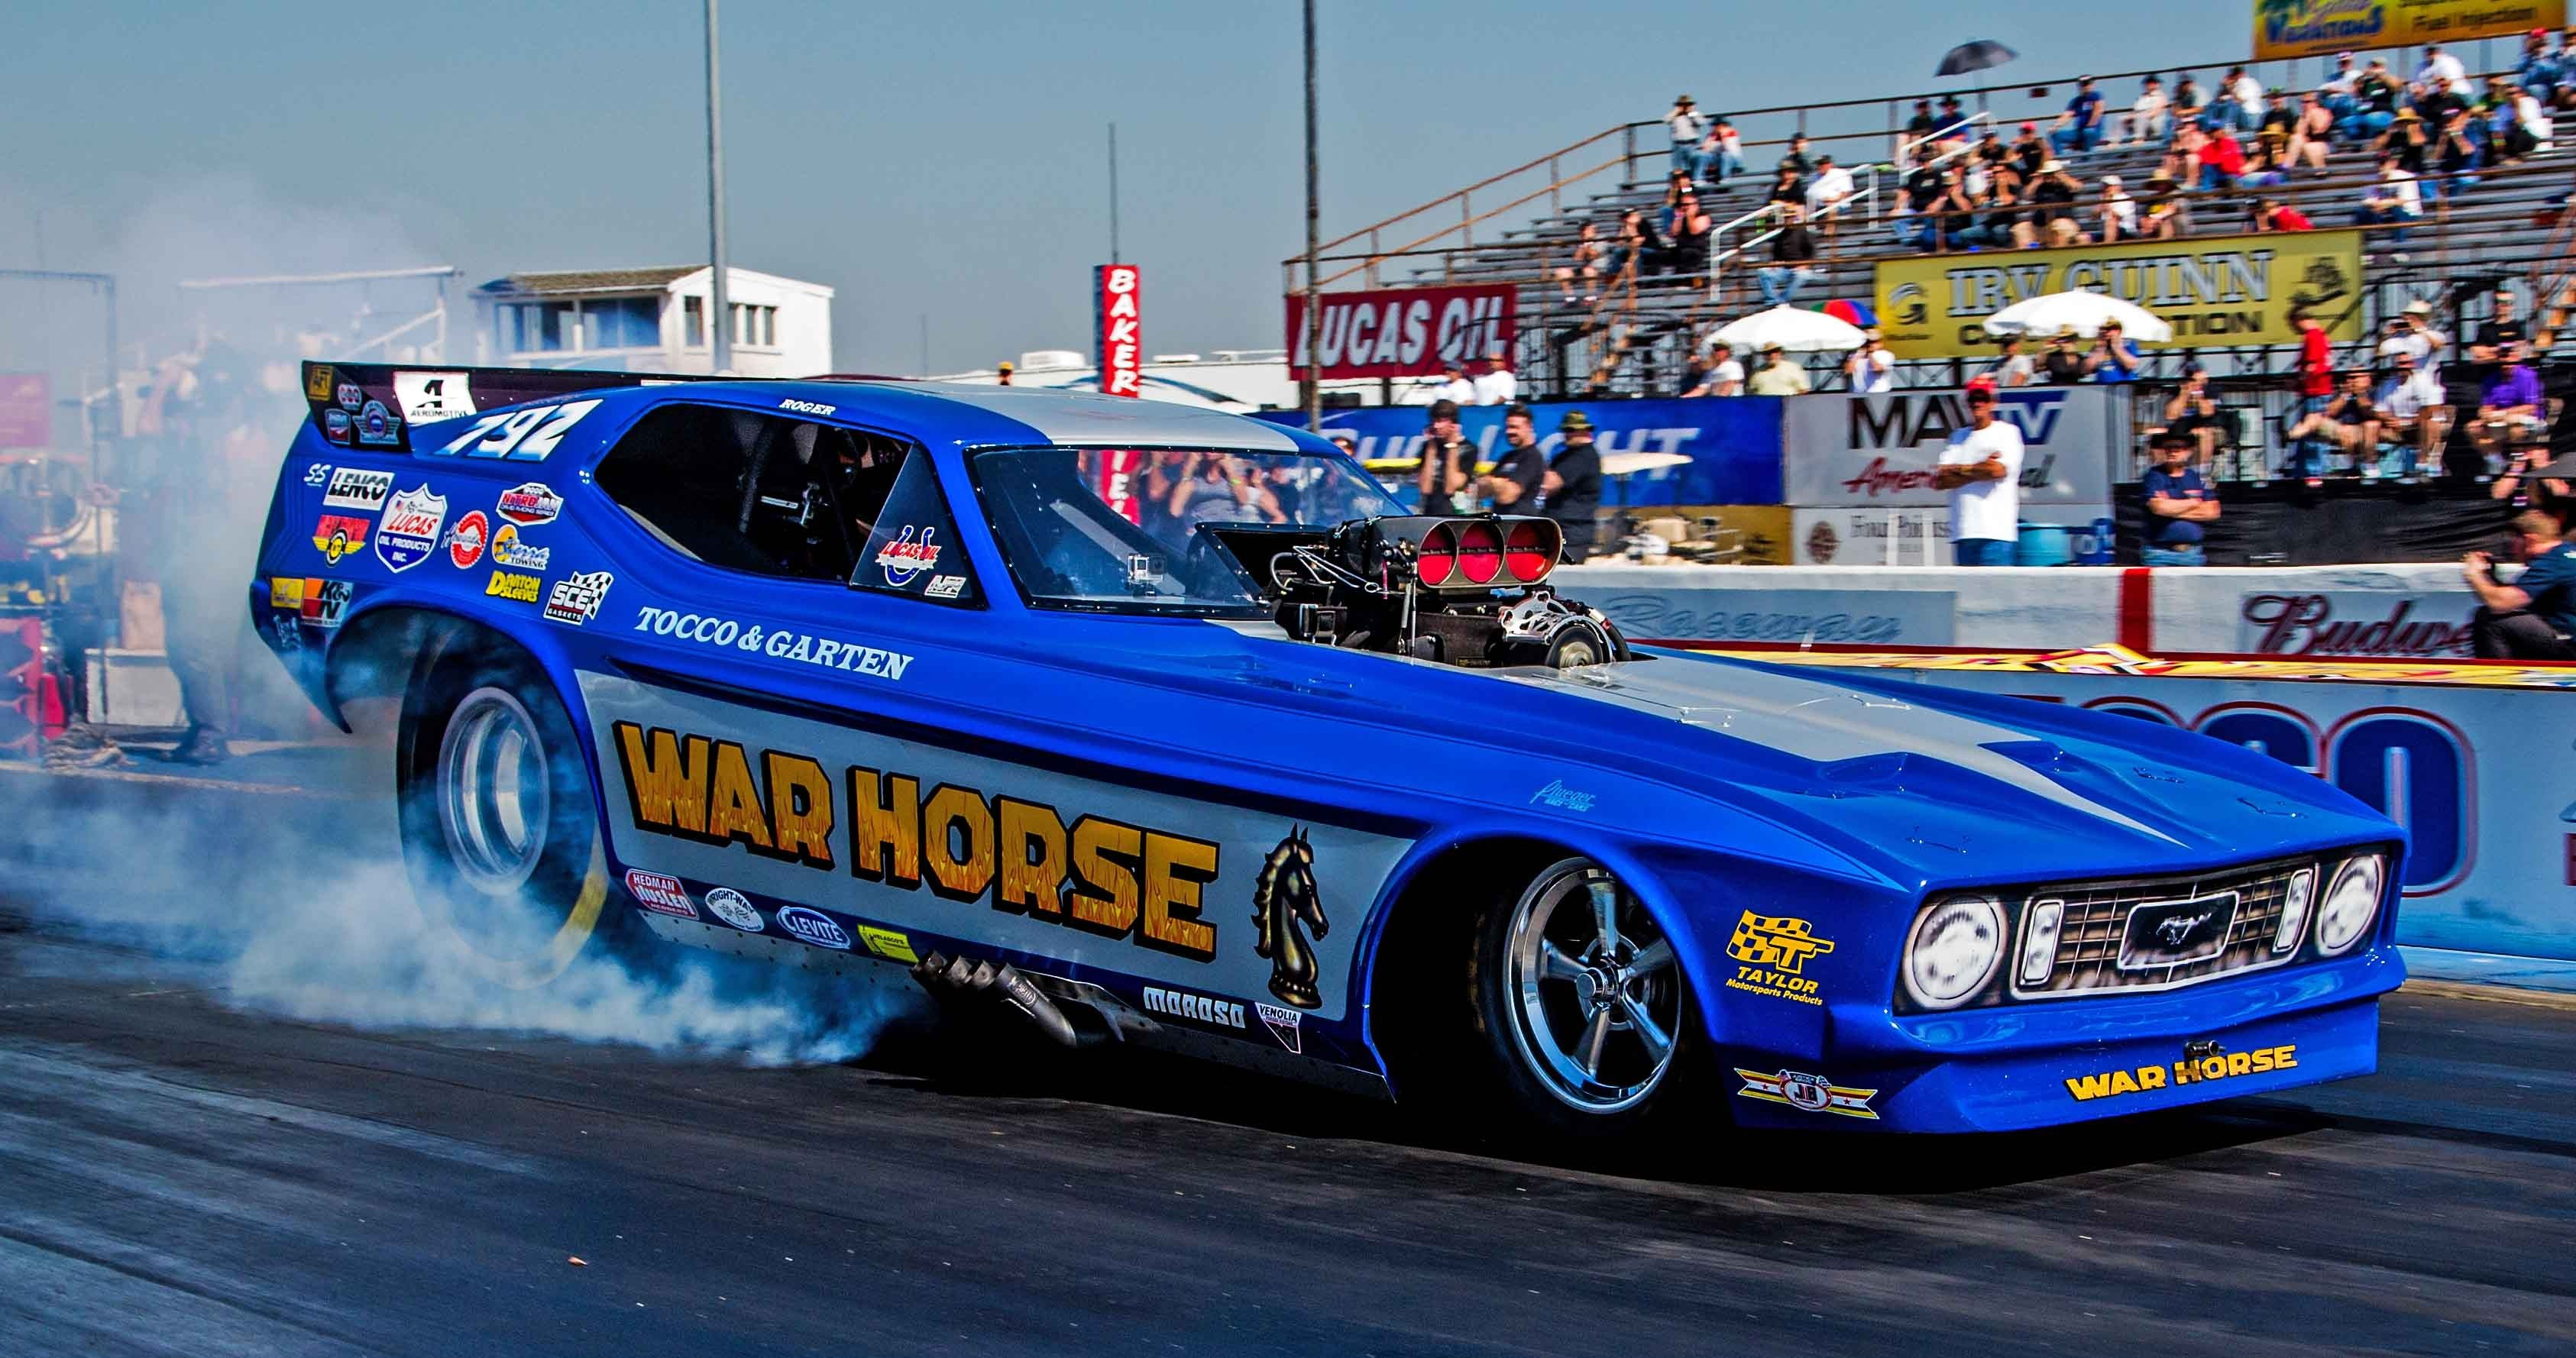 Res: 3372x1778, Images of Funny Car |